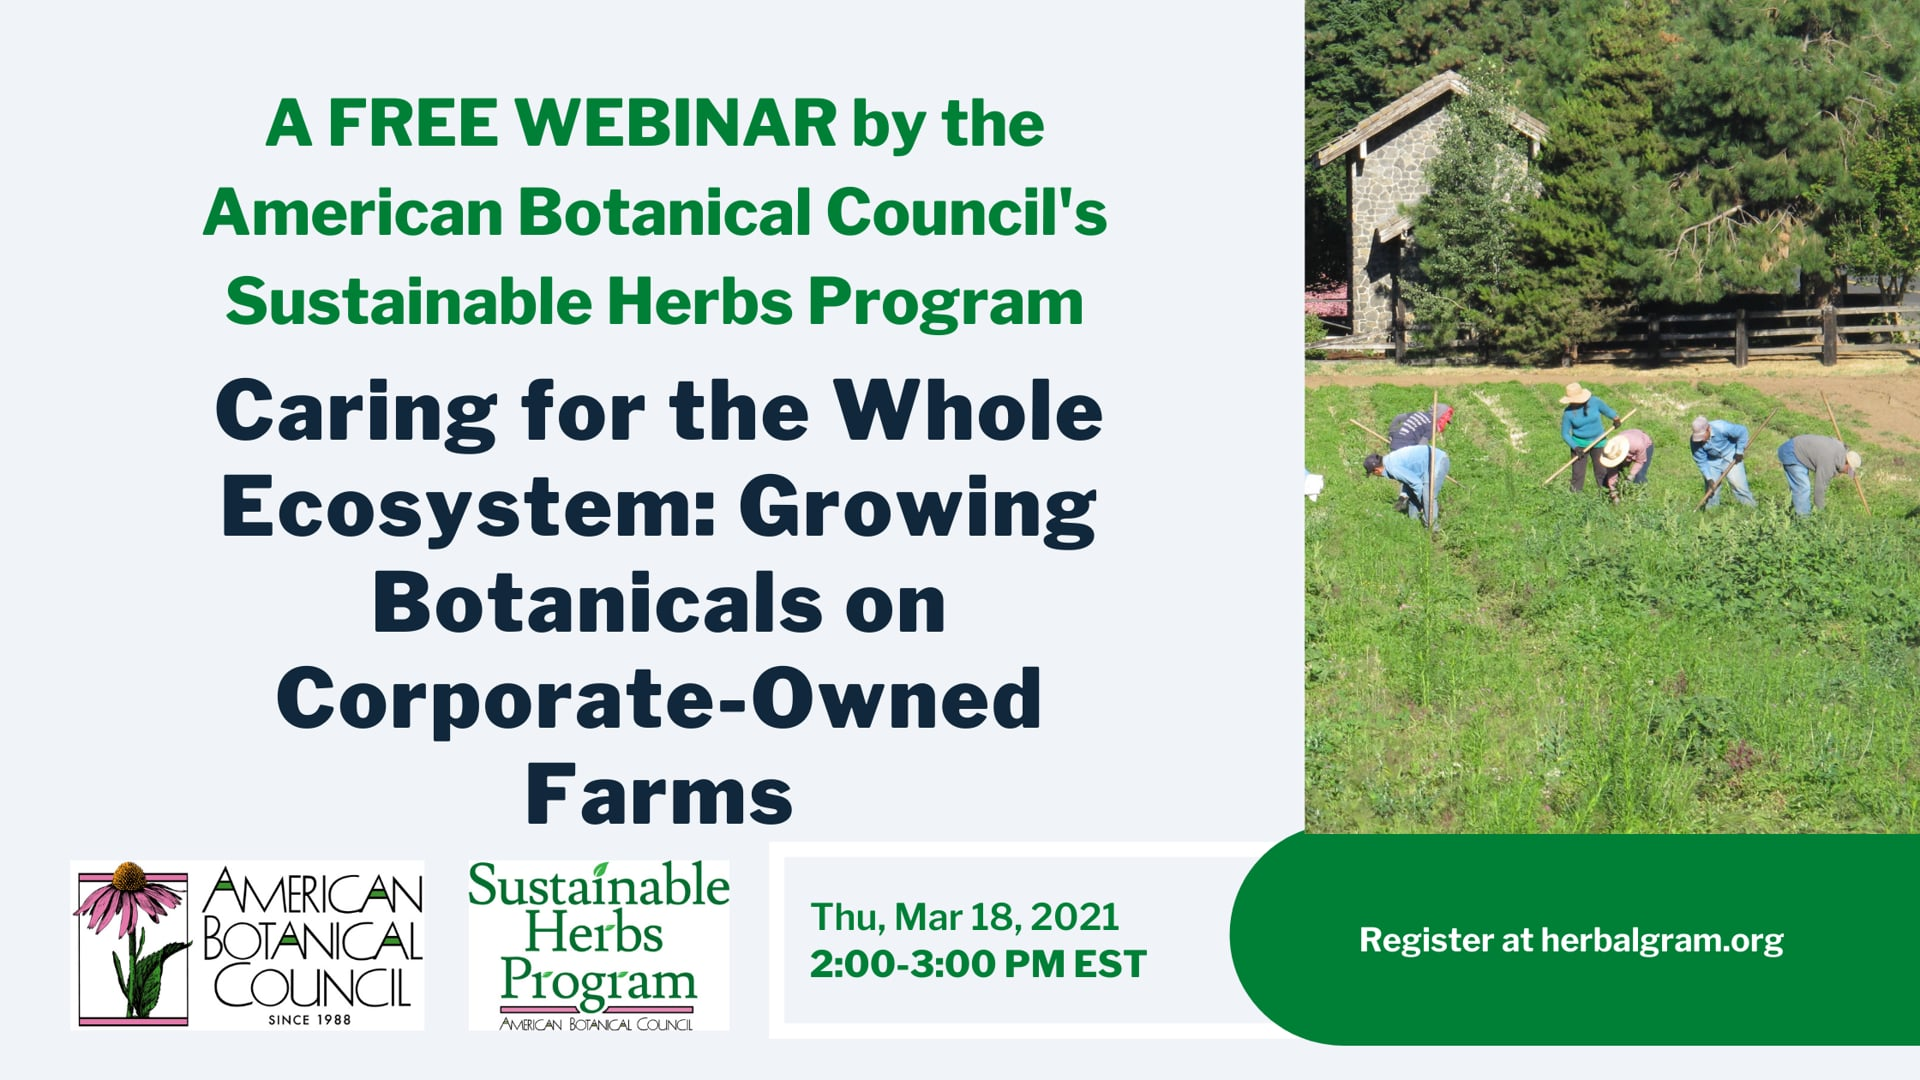 Regenerative Practices on Corporate-Owned Herb Farms